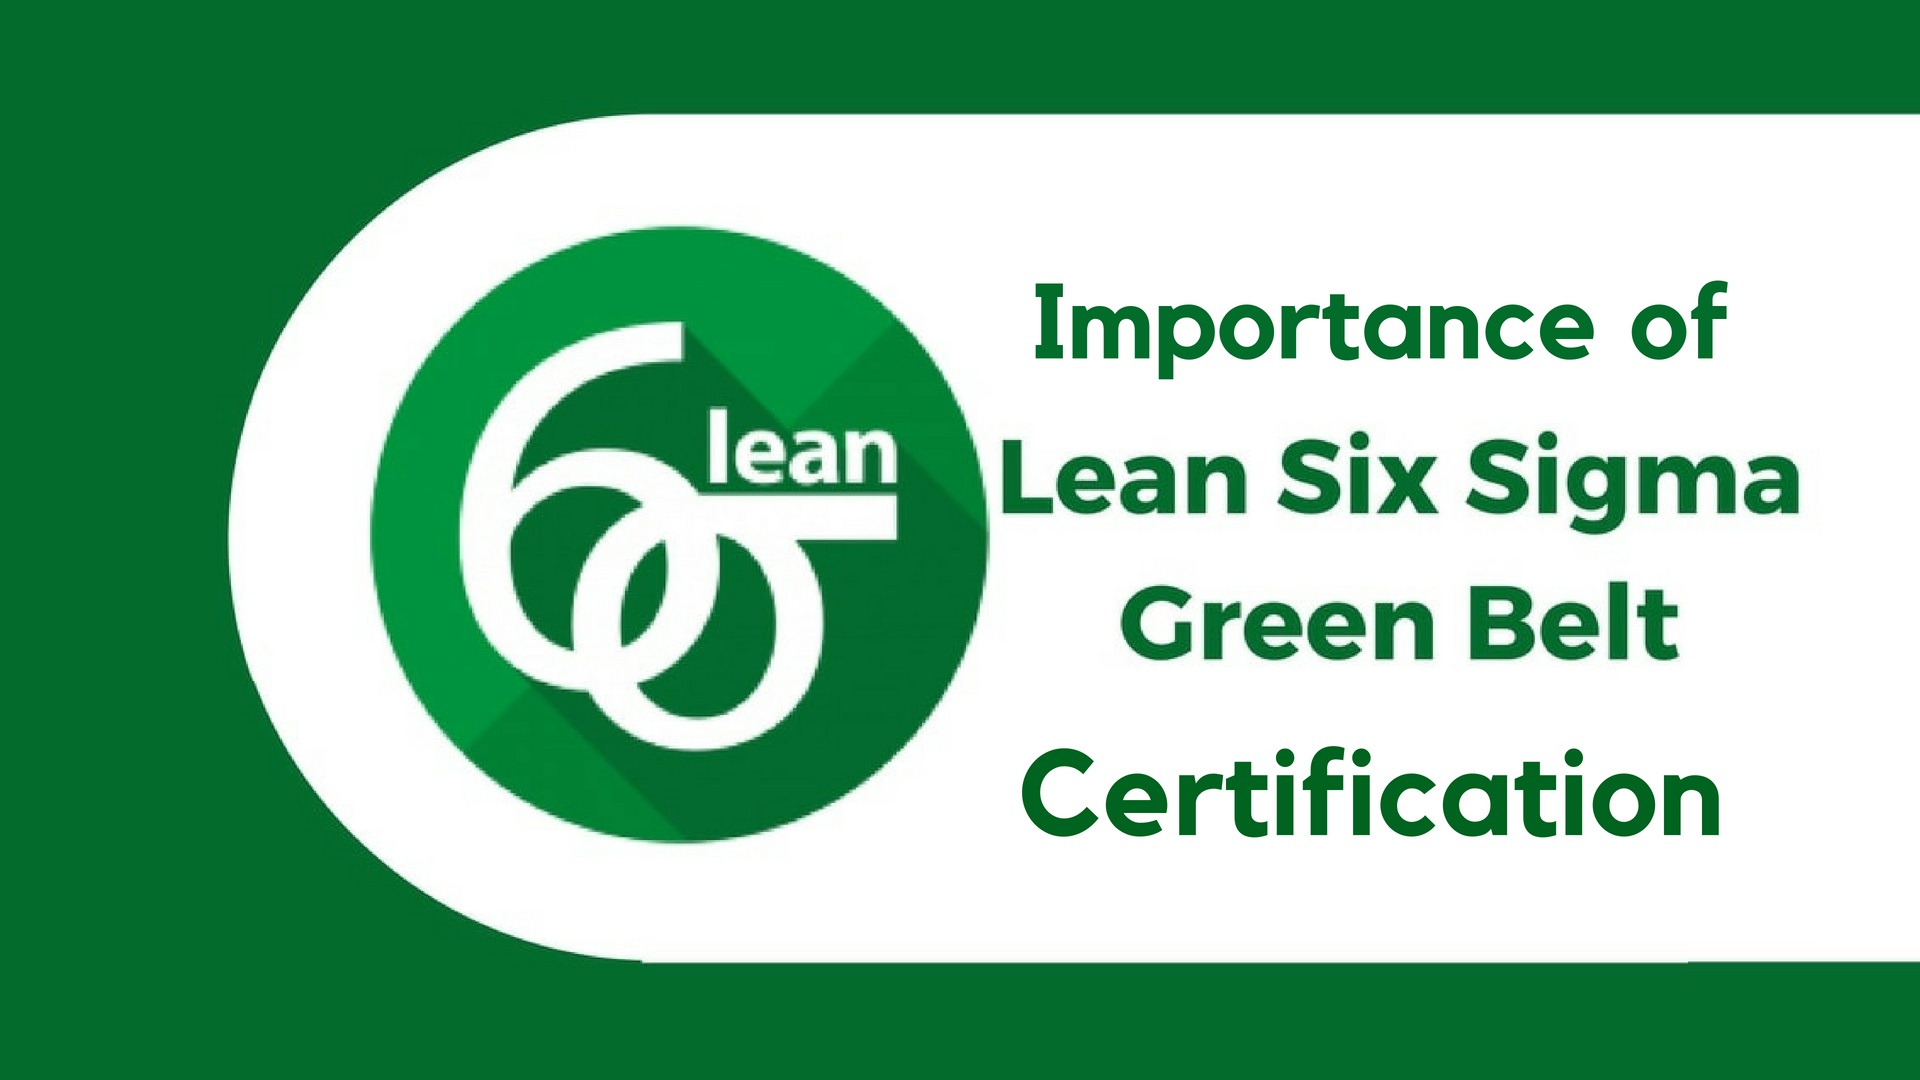 Importance Of Lean Six Sigma Green Belt Certification